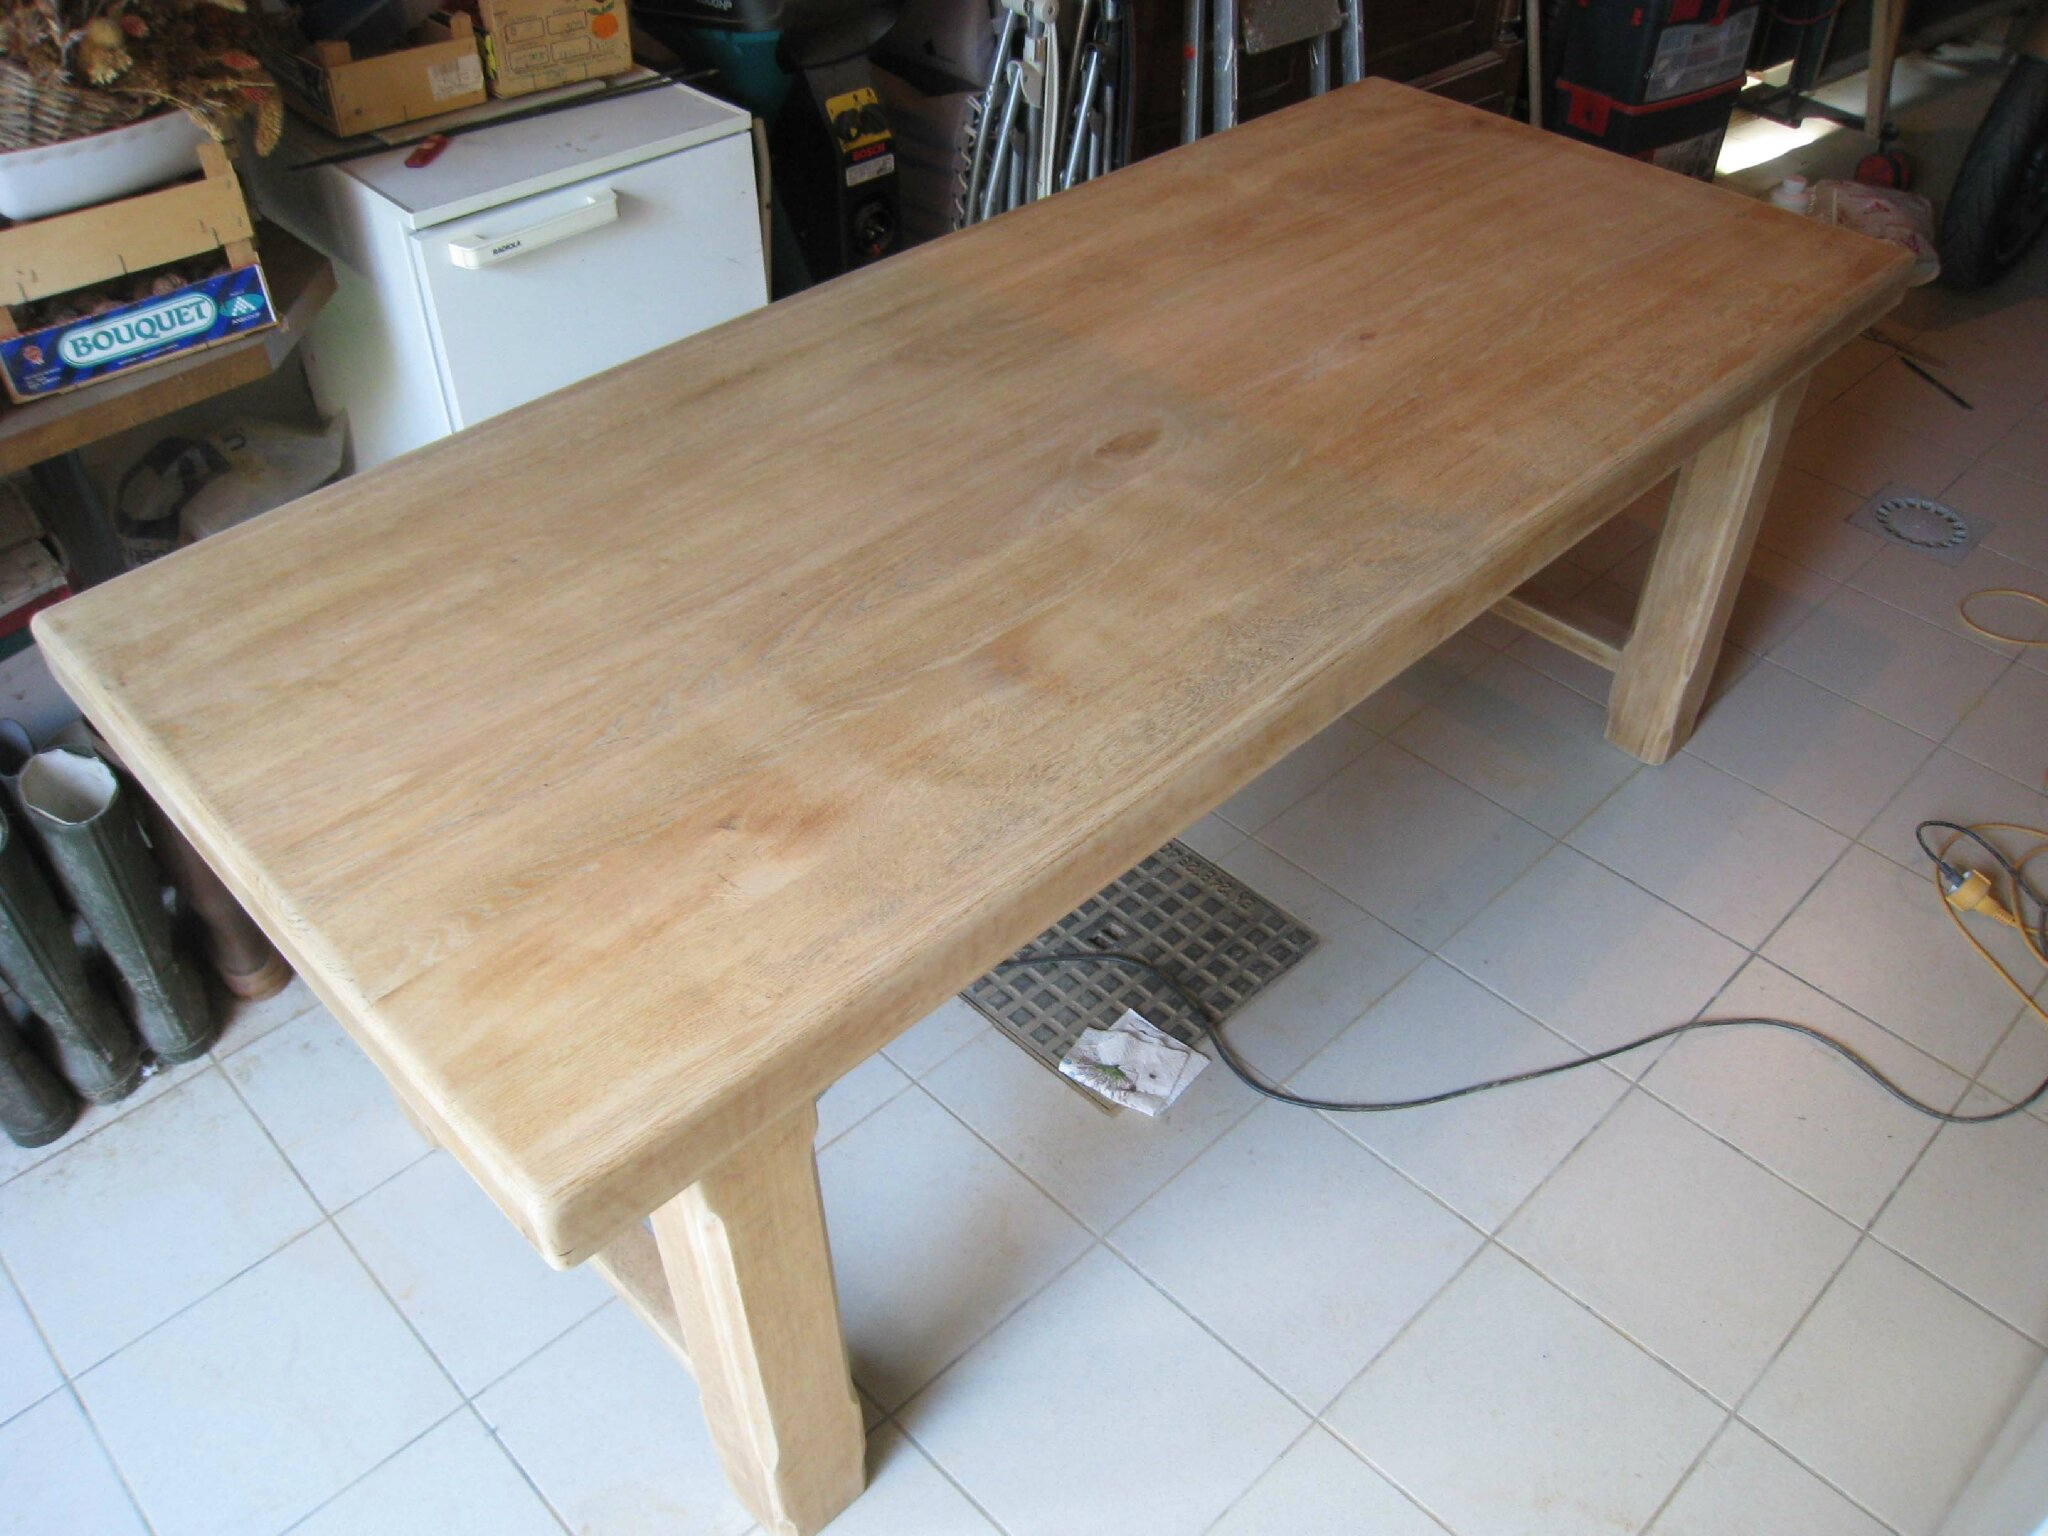 Fabriquer sa table basse originale - Comment patiner une table basse en bois ...